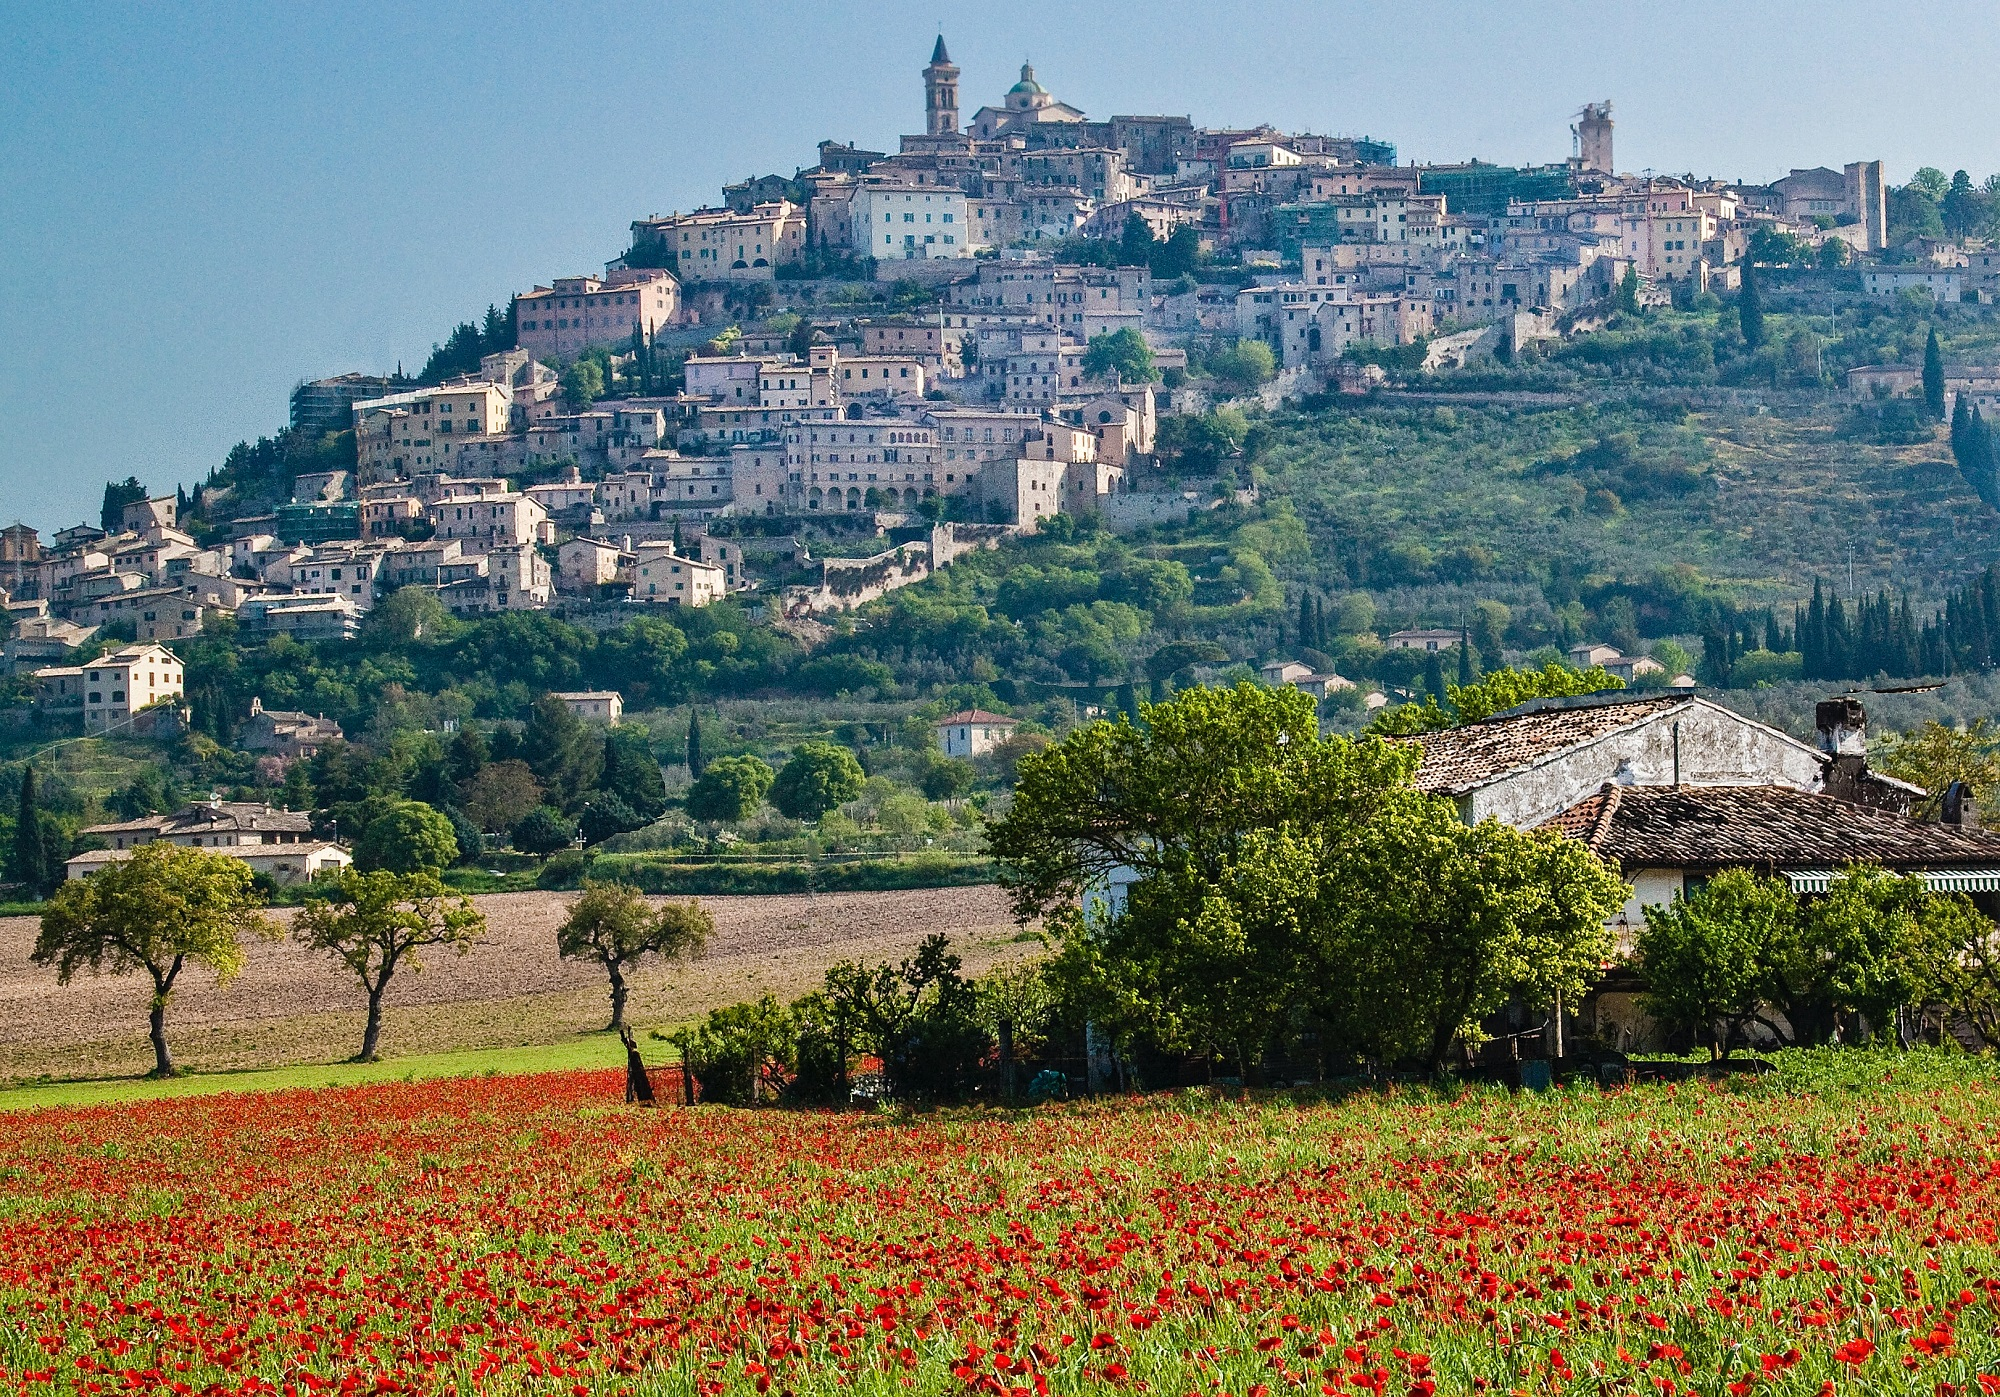 Byron and sublime Umbria: a short but intense love story